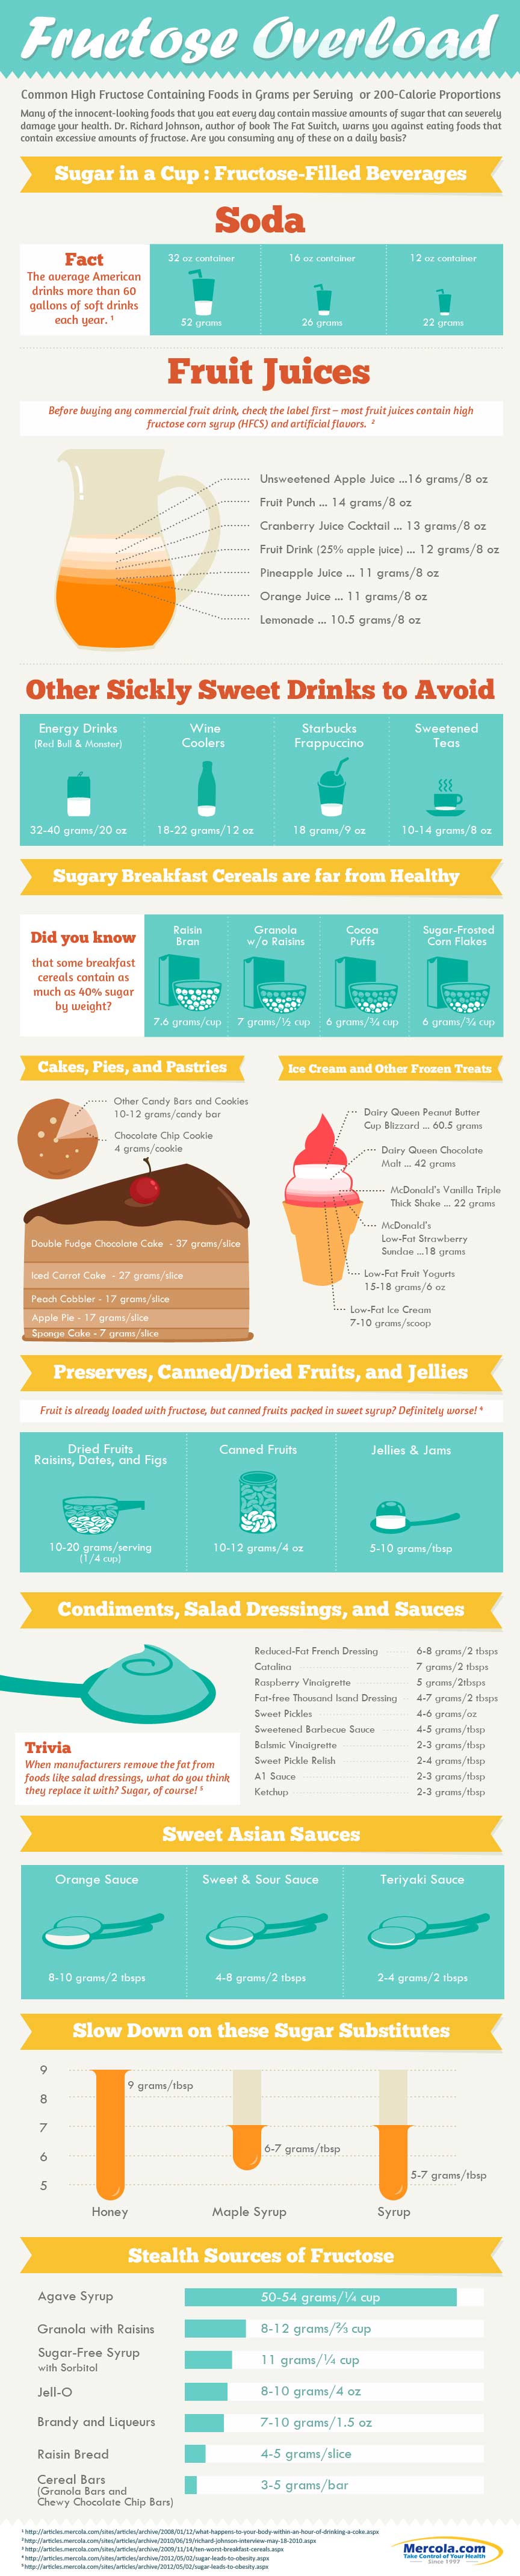 fructose-overload-infographic